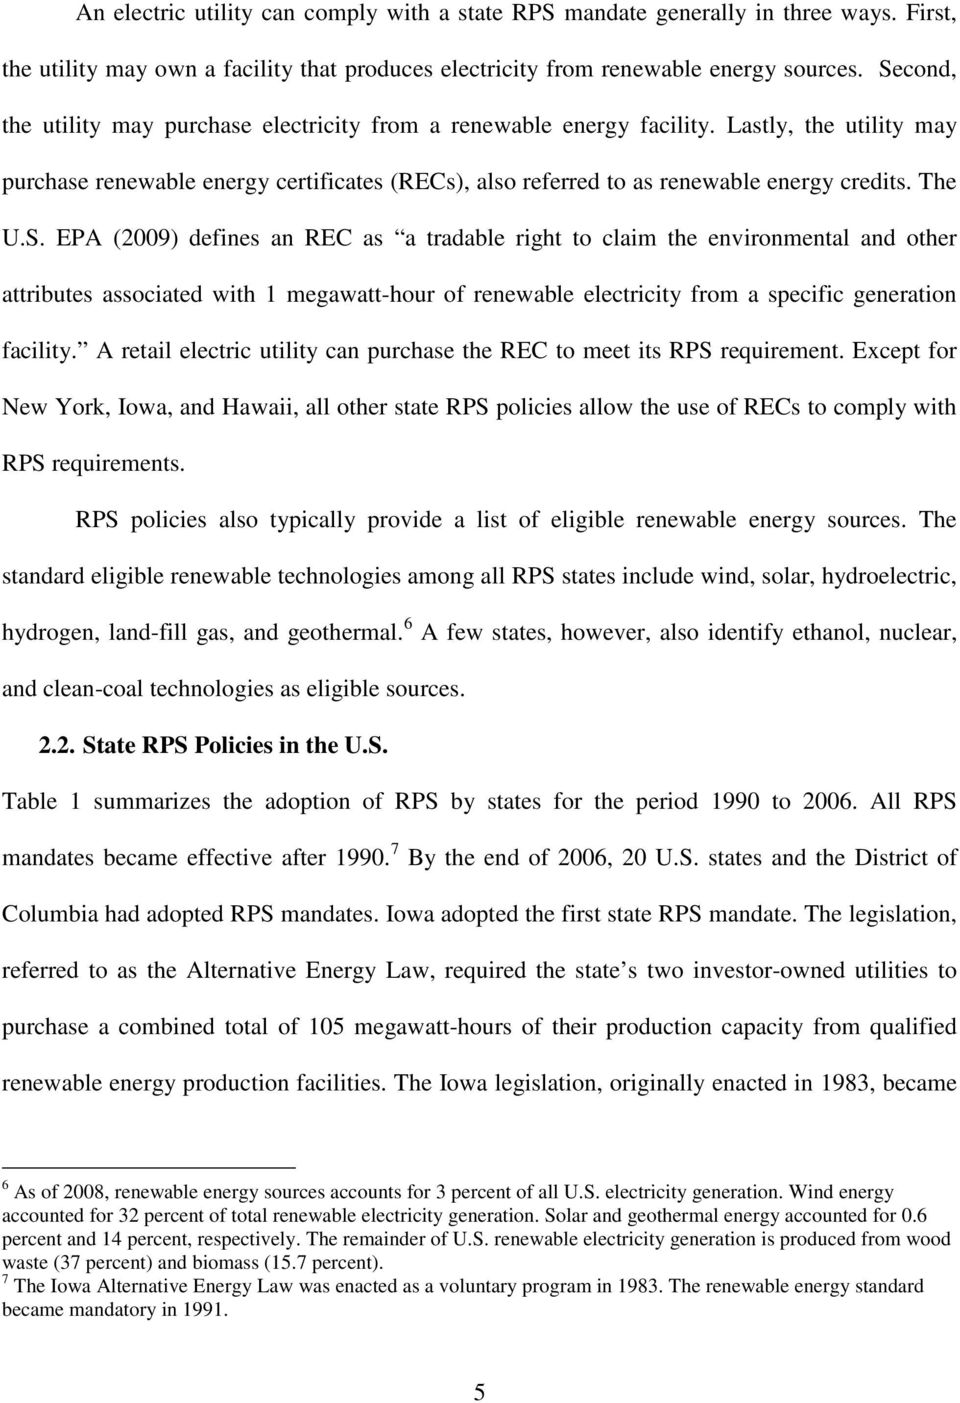 The U.S. EPA (2009) defines an REC as a tradable right to claim the environmental and other attributes associated with 1 megawatt-hour of renewable electricity from a specific generation facility.